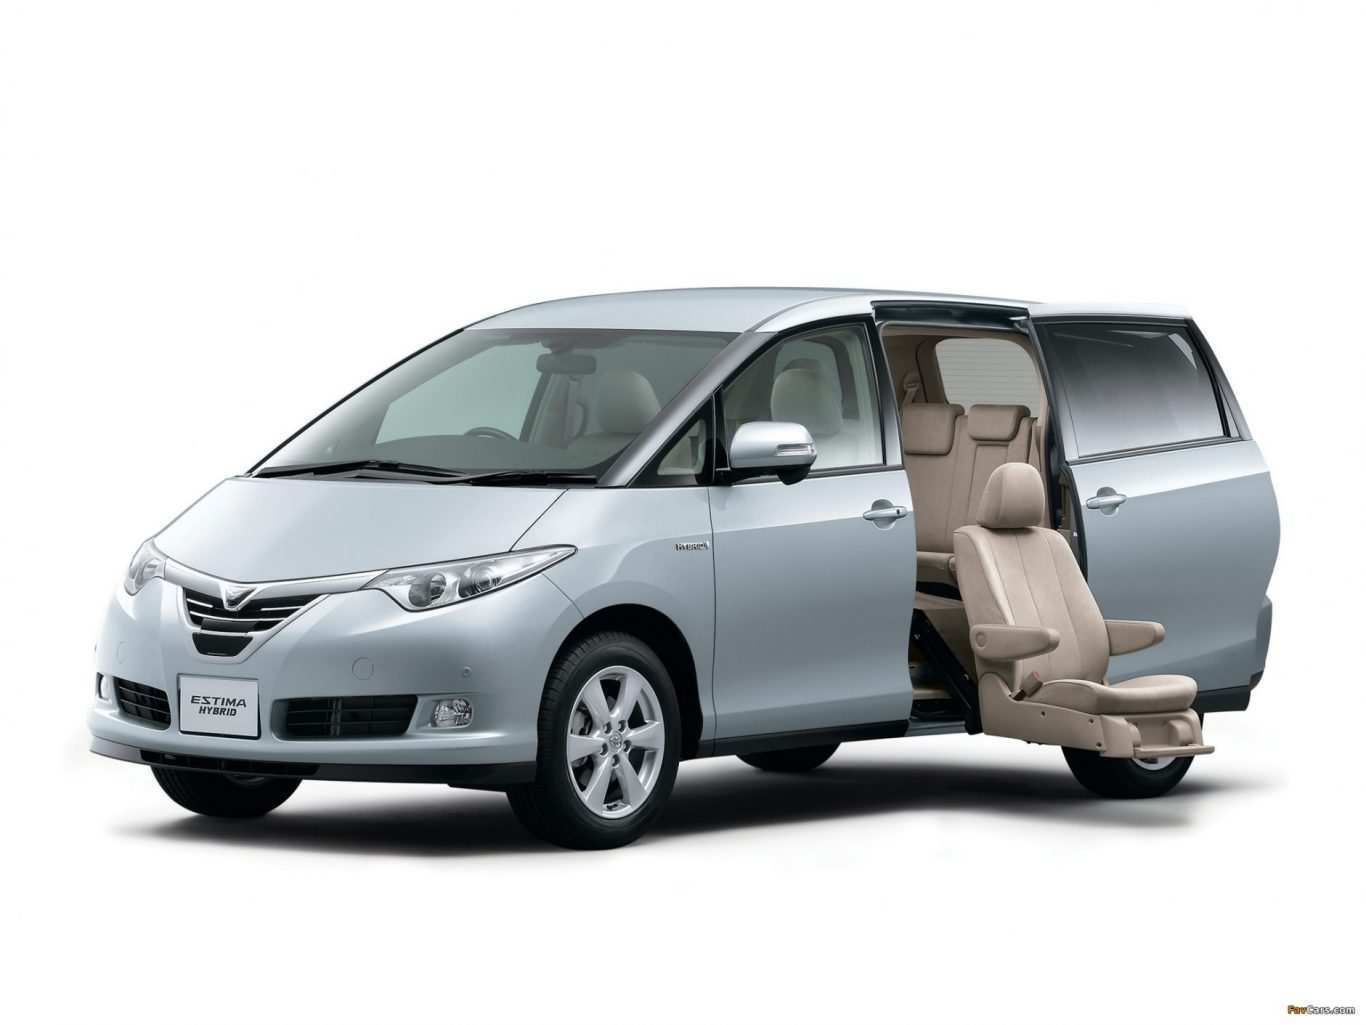 87 The Best 2019 Toyota Estima Configurations